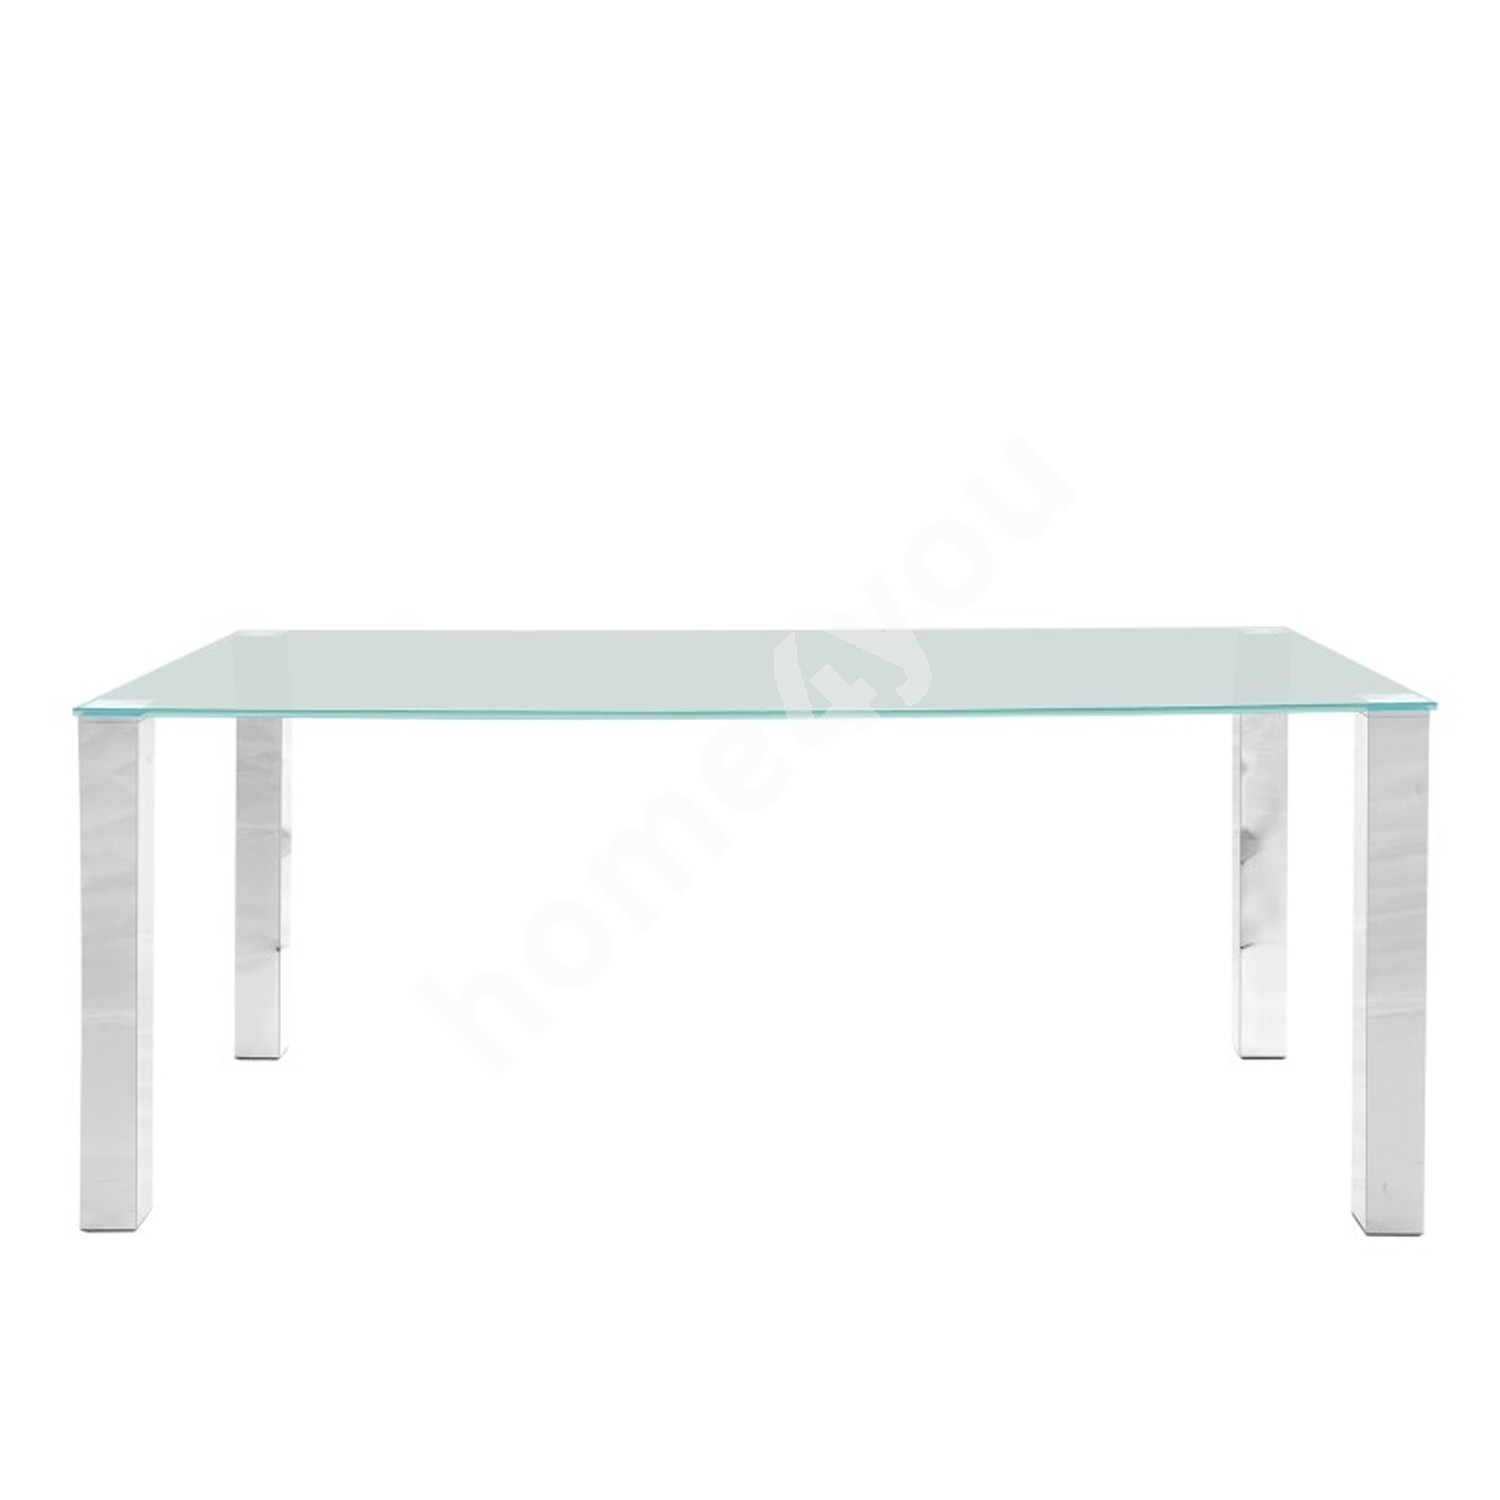 Dining table KANTE 180x90xH75cm, table top: 12mm glass, leg: chromed metal